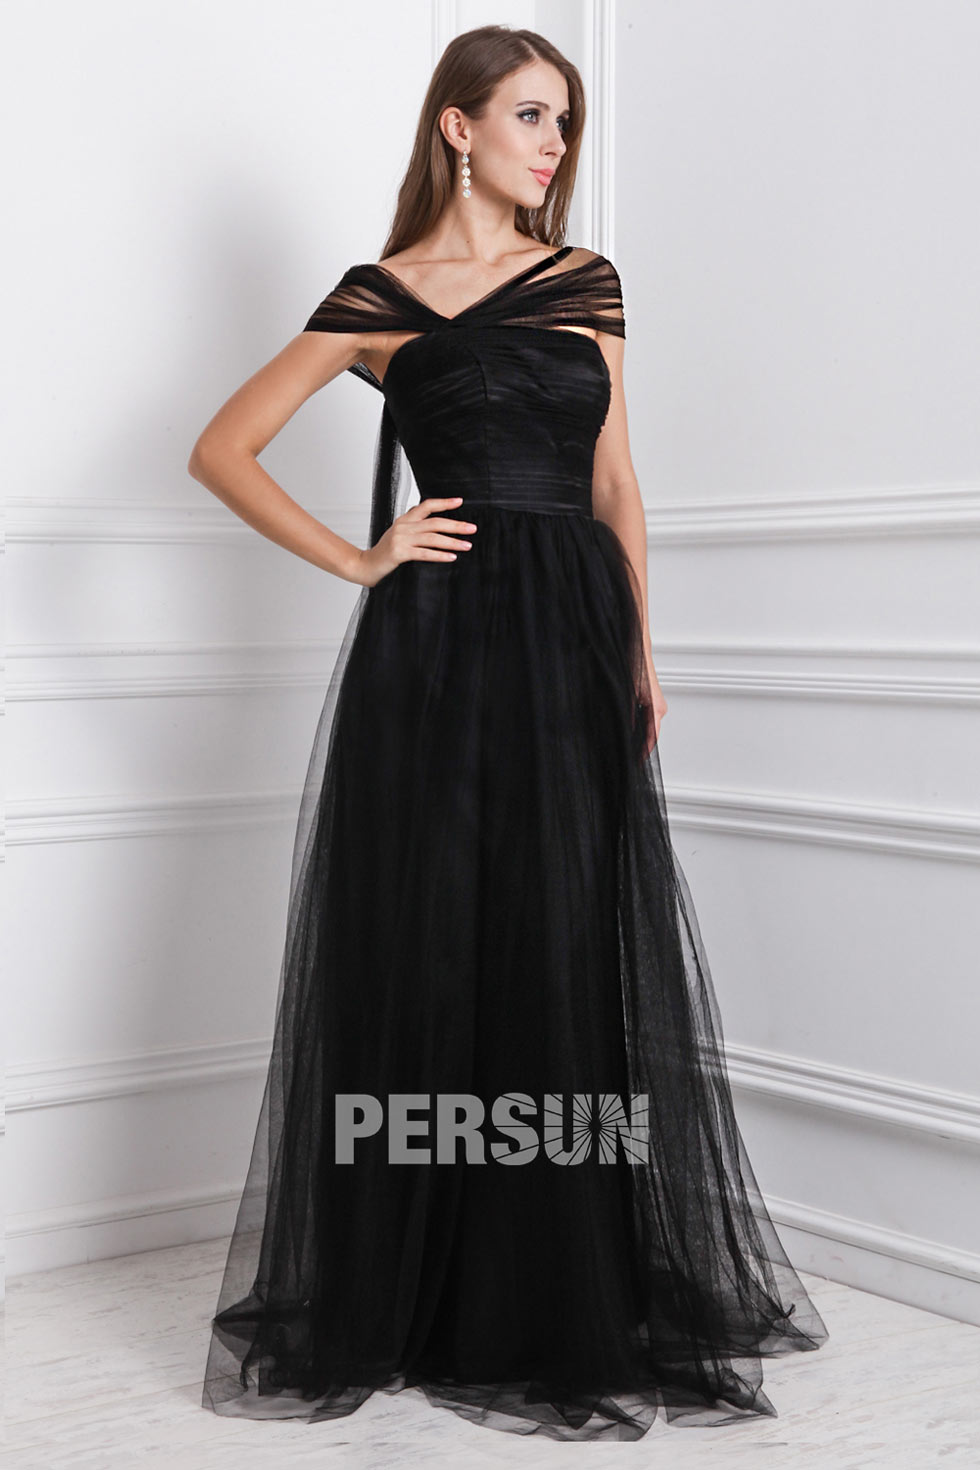 robe noire encolure asym trique longue en tulle pour soir e mariage. Black Bedroom Furniture Sets. Home Design Ideas